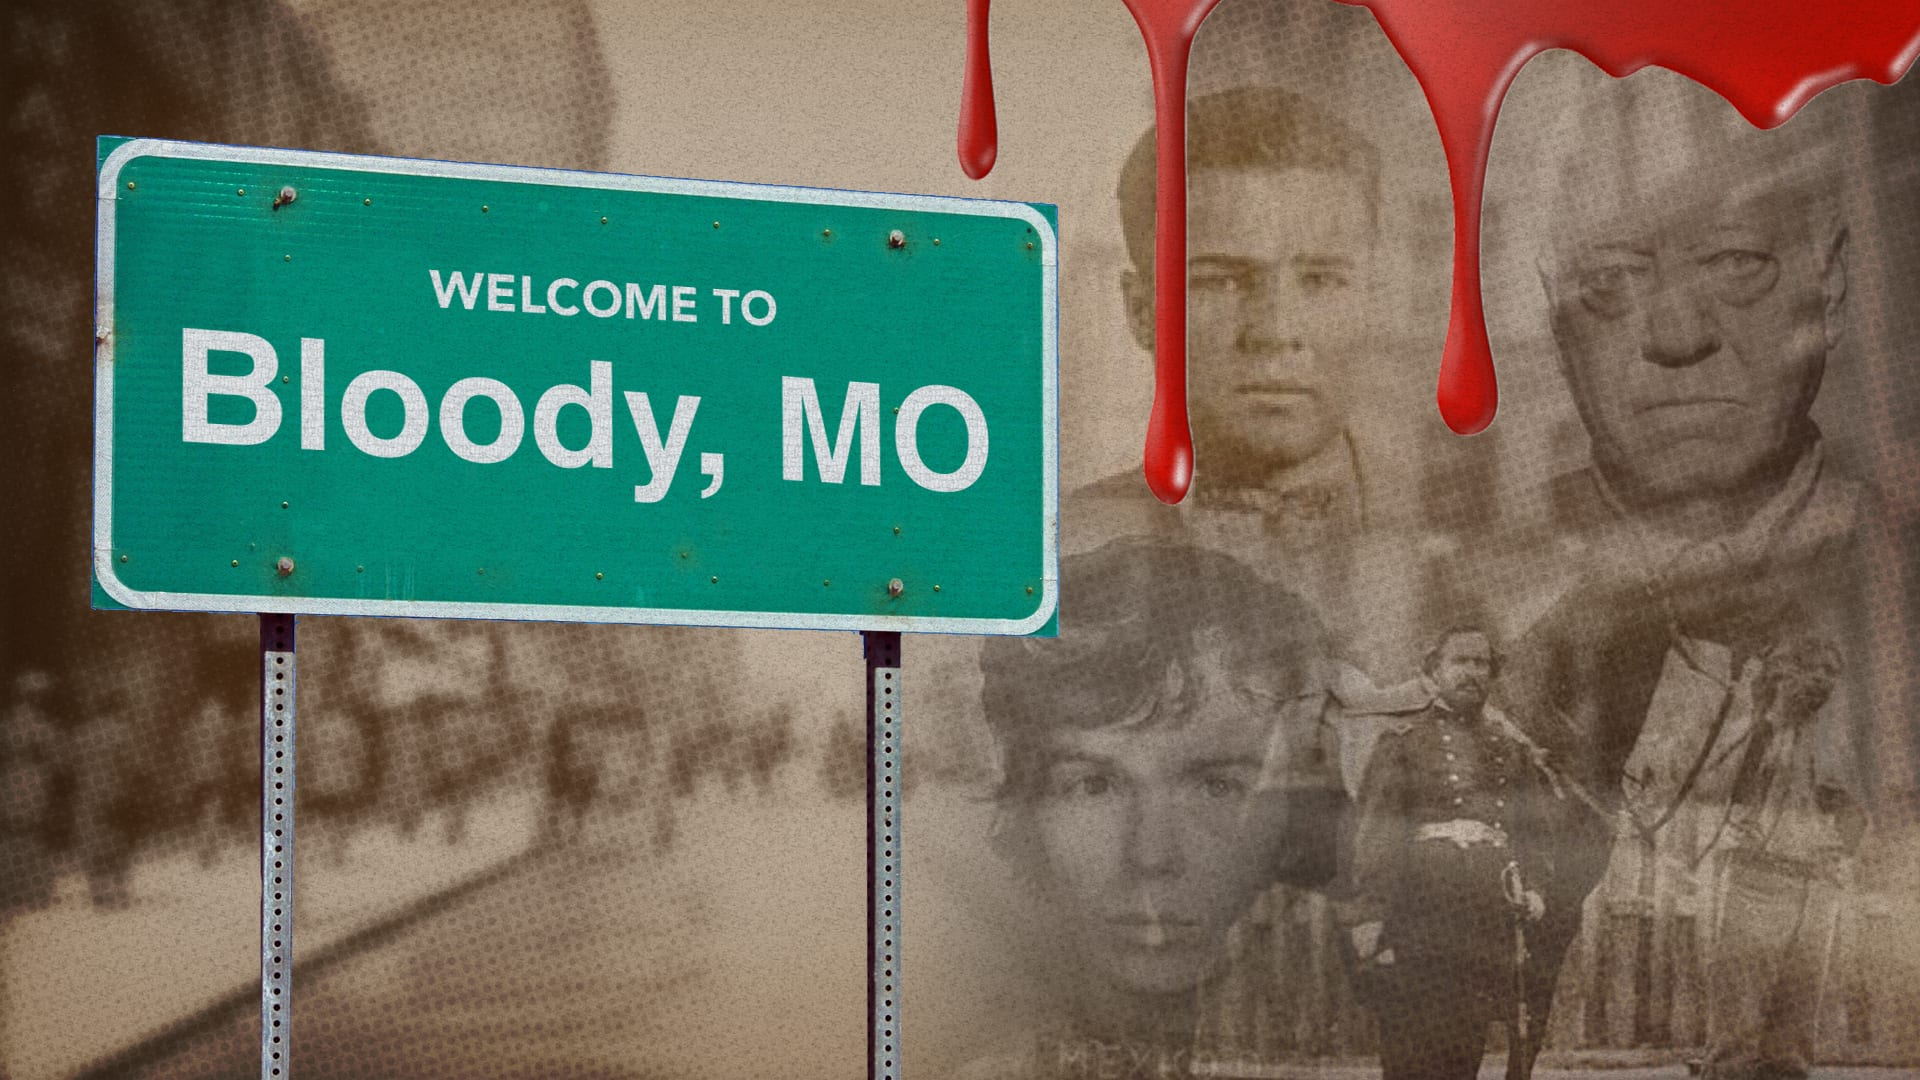 Welcome to Bloody, MO